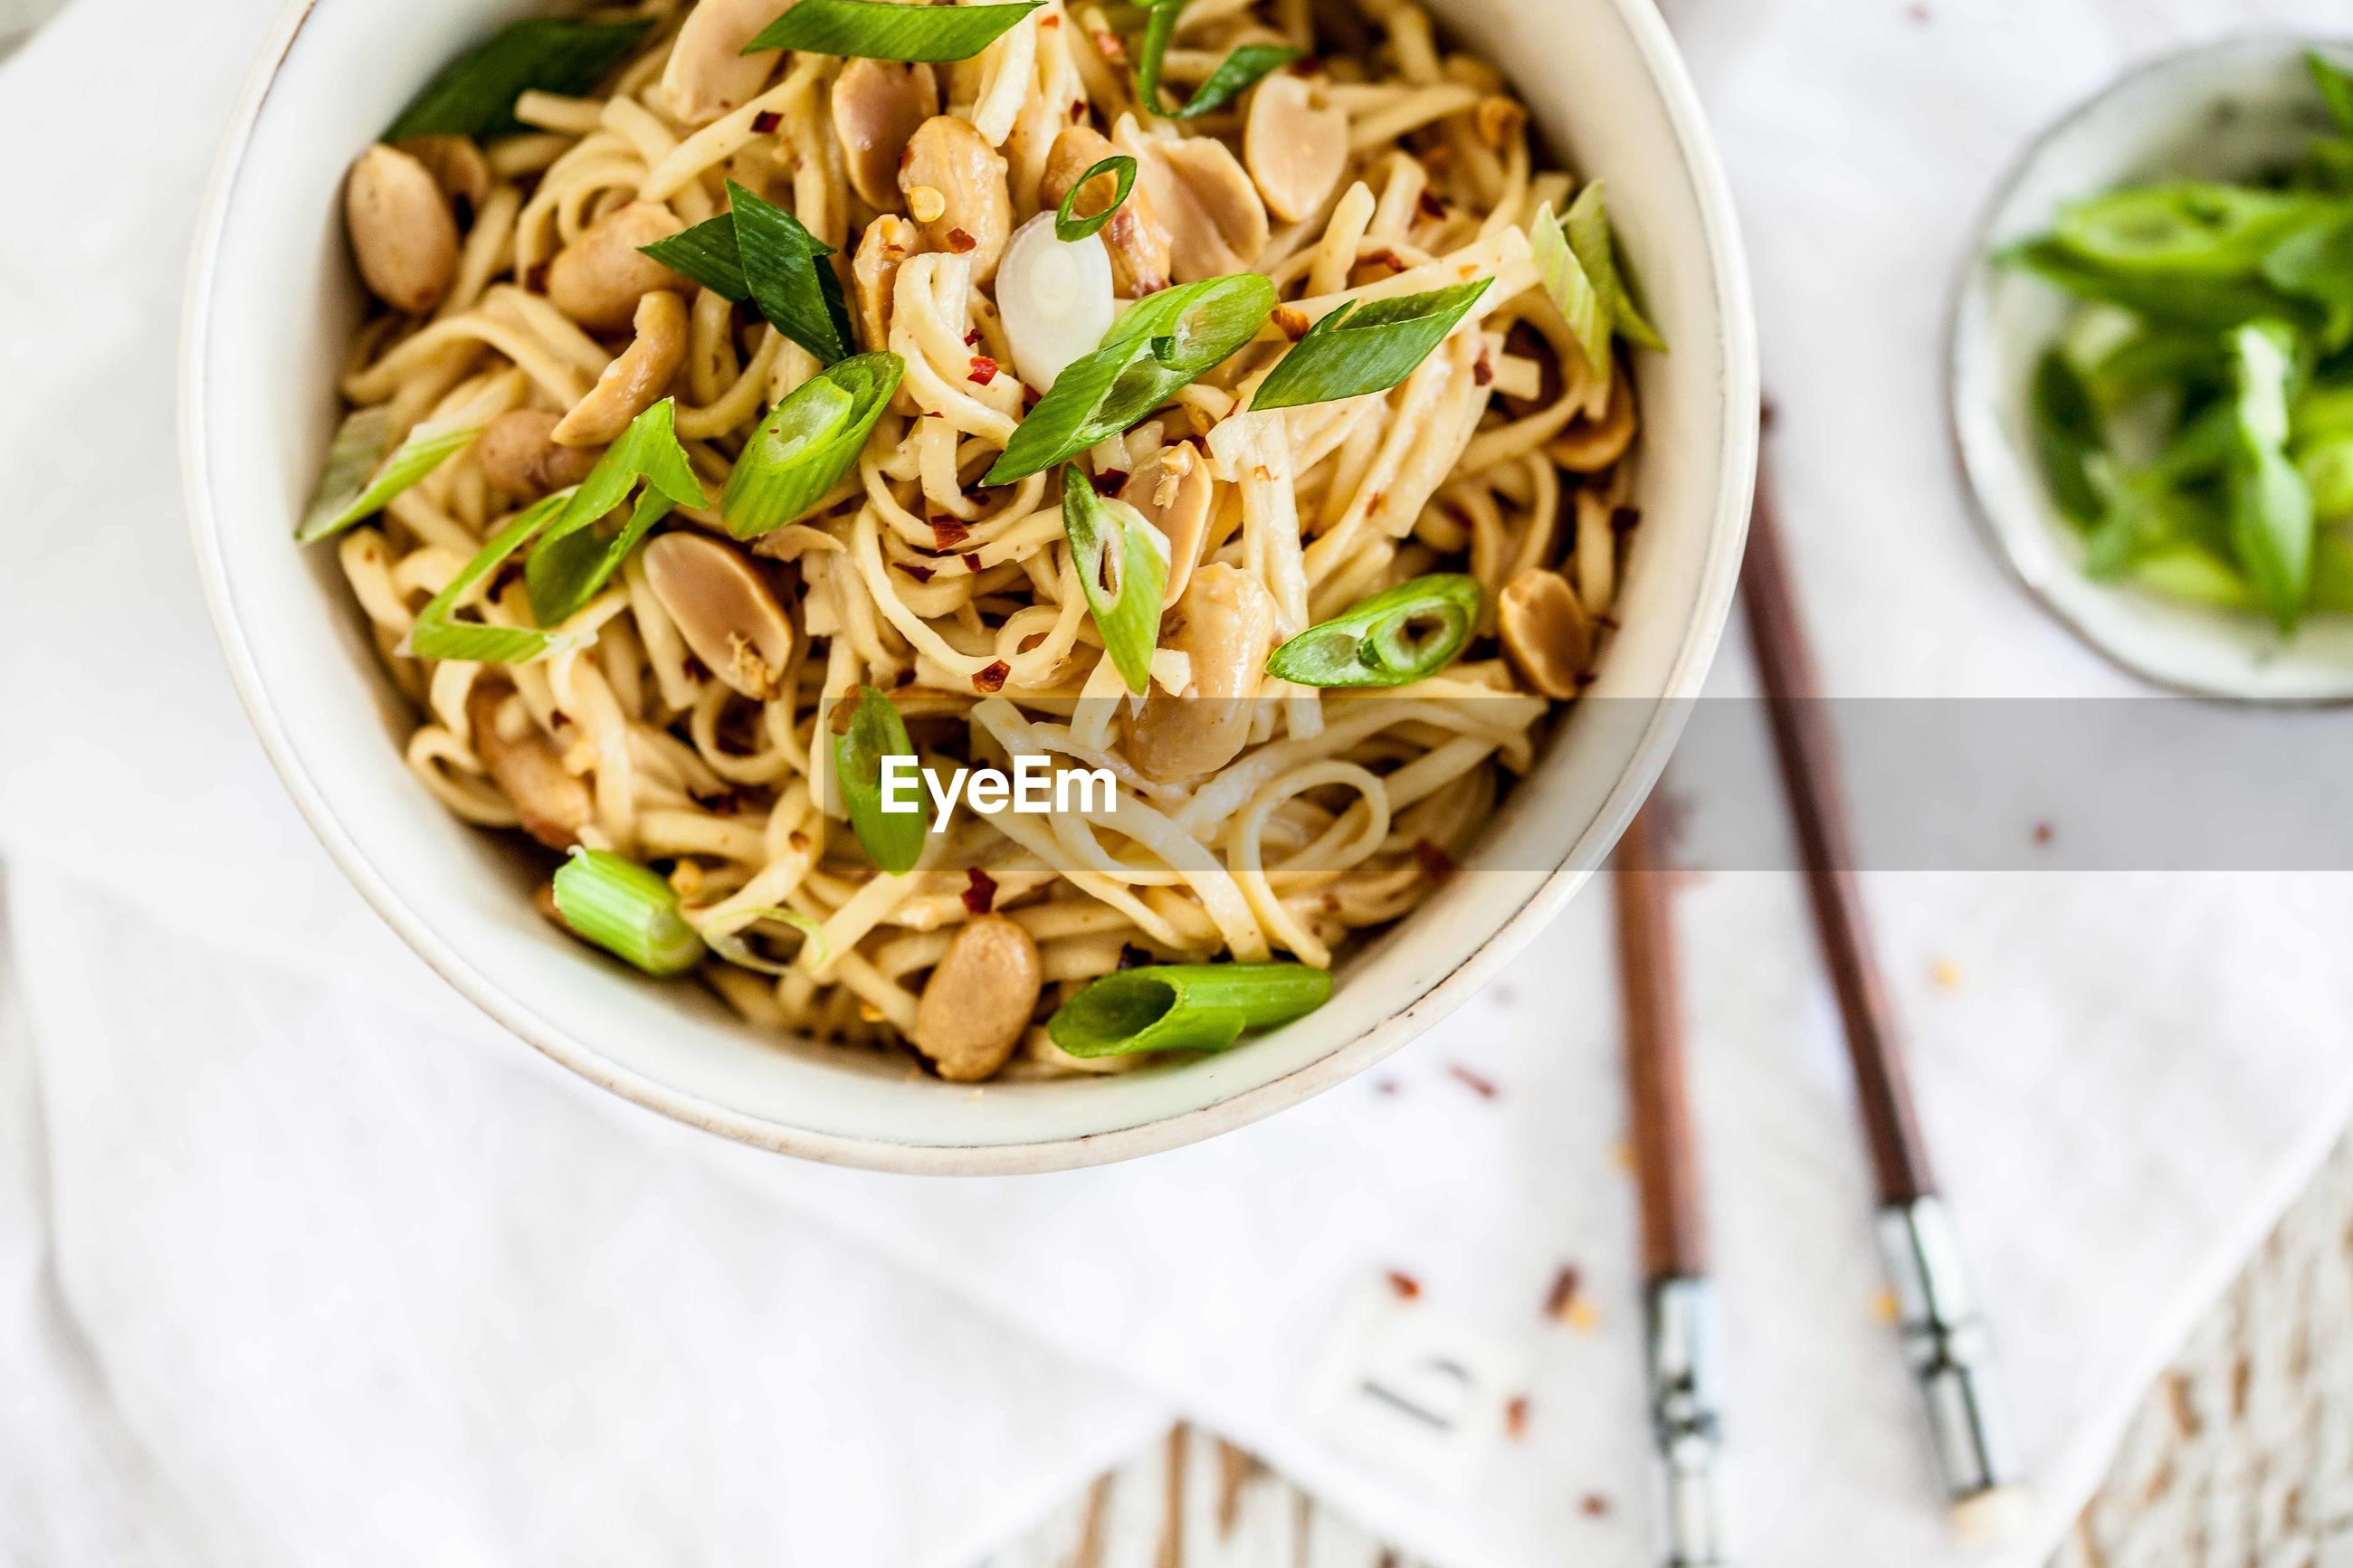 Close-up of fried noodles in bowl on table